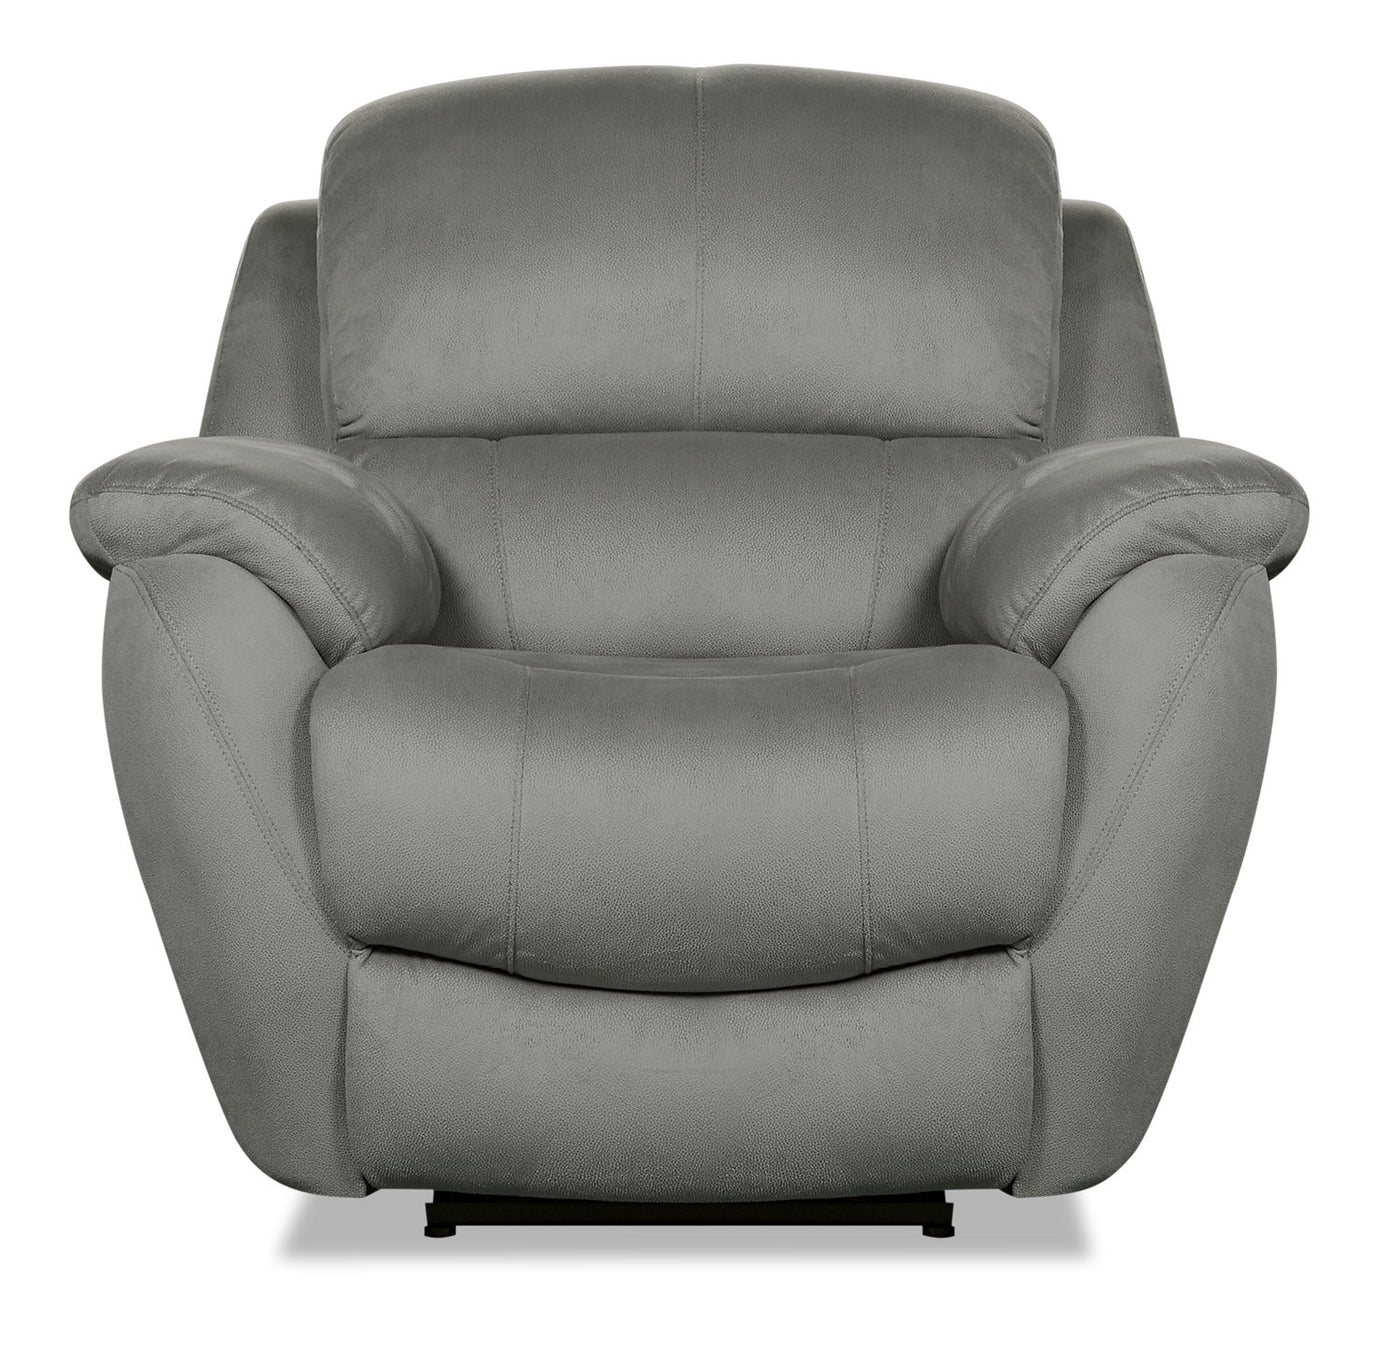 Suede Look Fauteuil.Brody Faux Suede Power Reclining Chair Grey The Brick